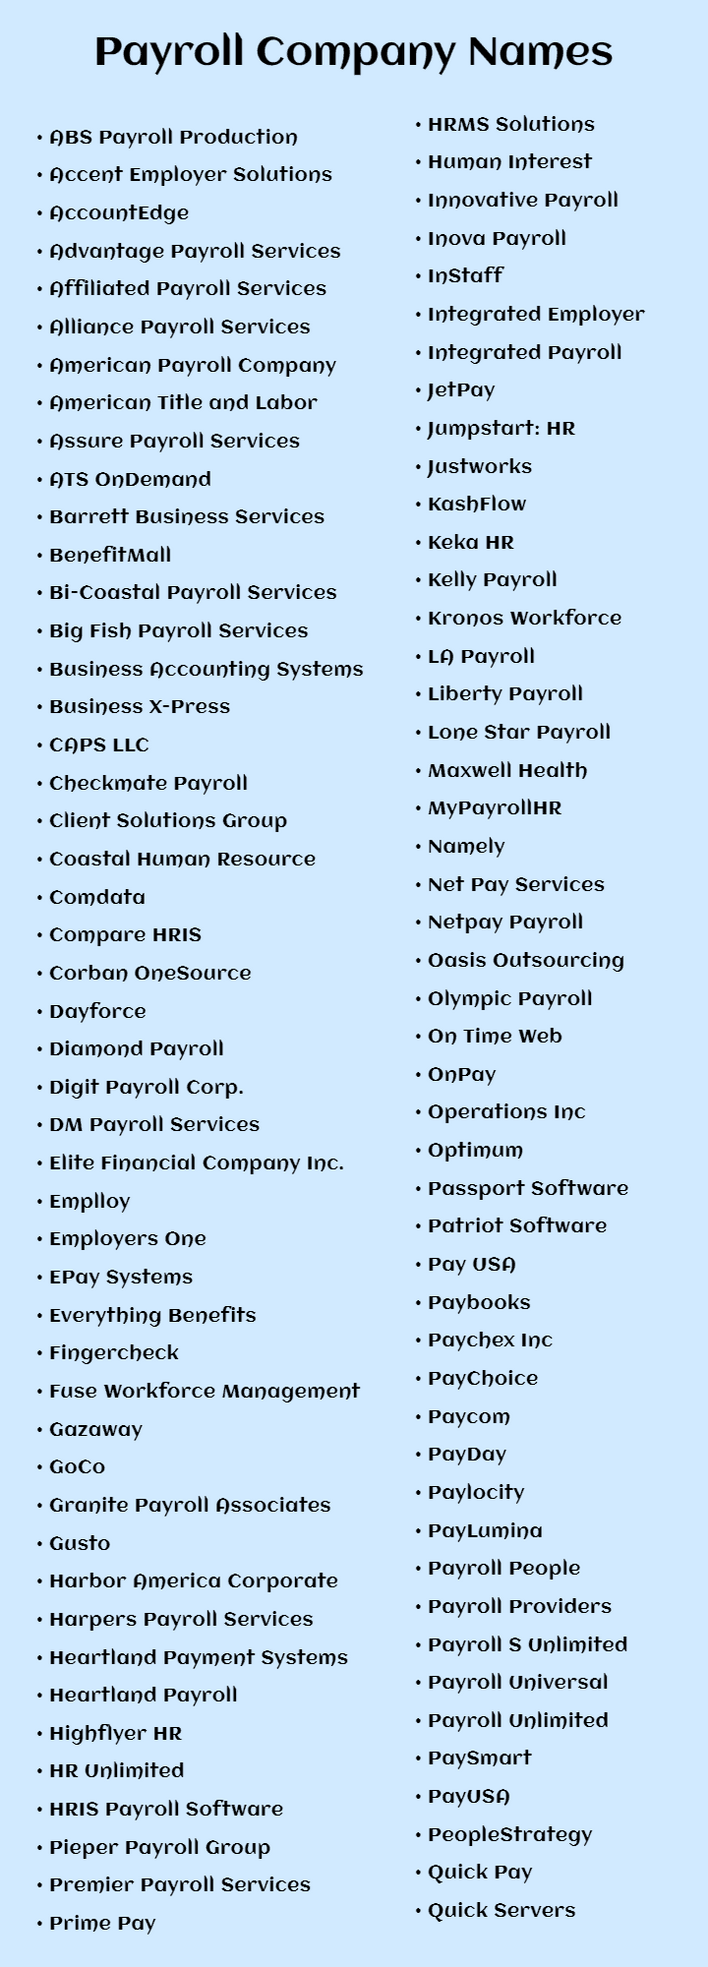 Payroll Company Names: the payroll companies for small business